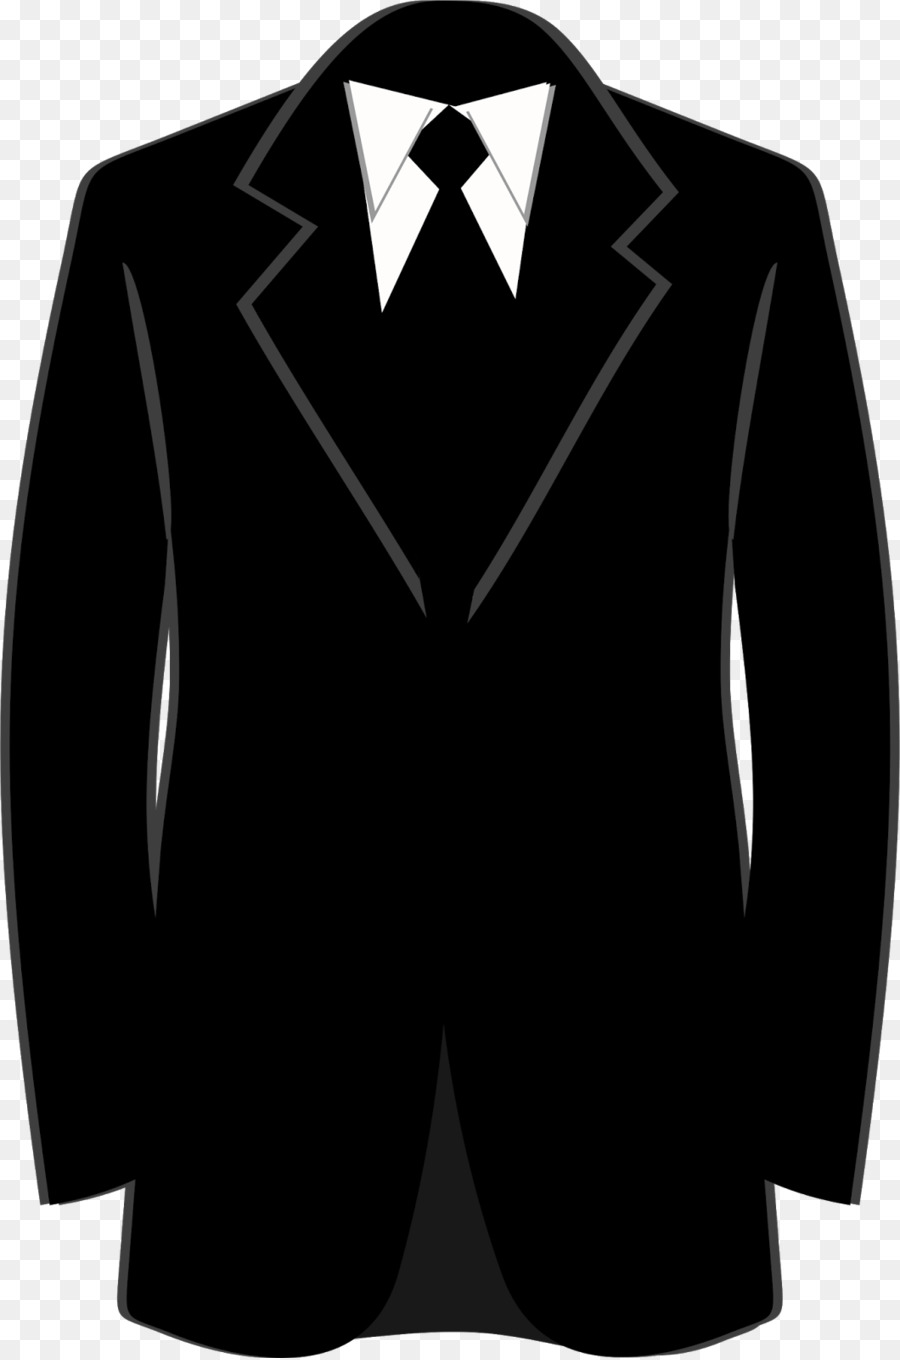 Suite clipart clip black and white stock Wedding Suit clipart - Suit, Wedding, Clothing, transparent ... clip black and white stock